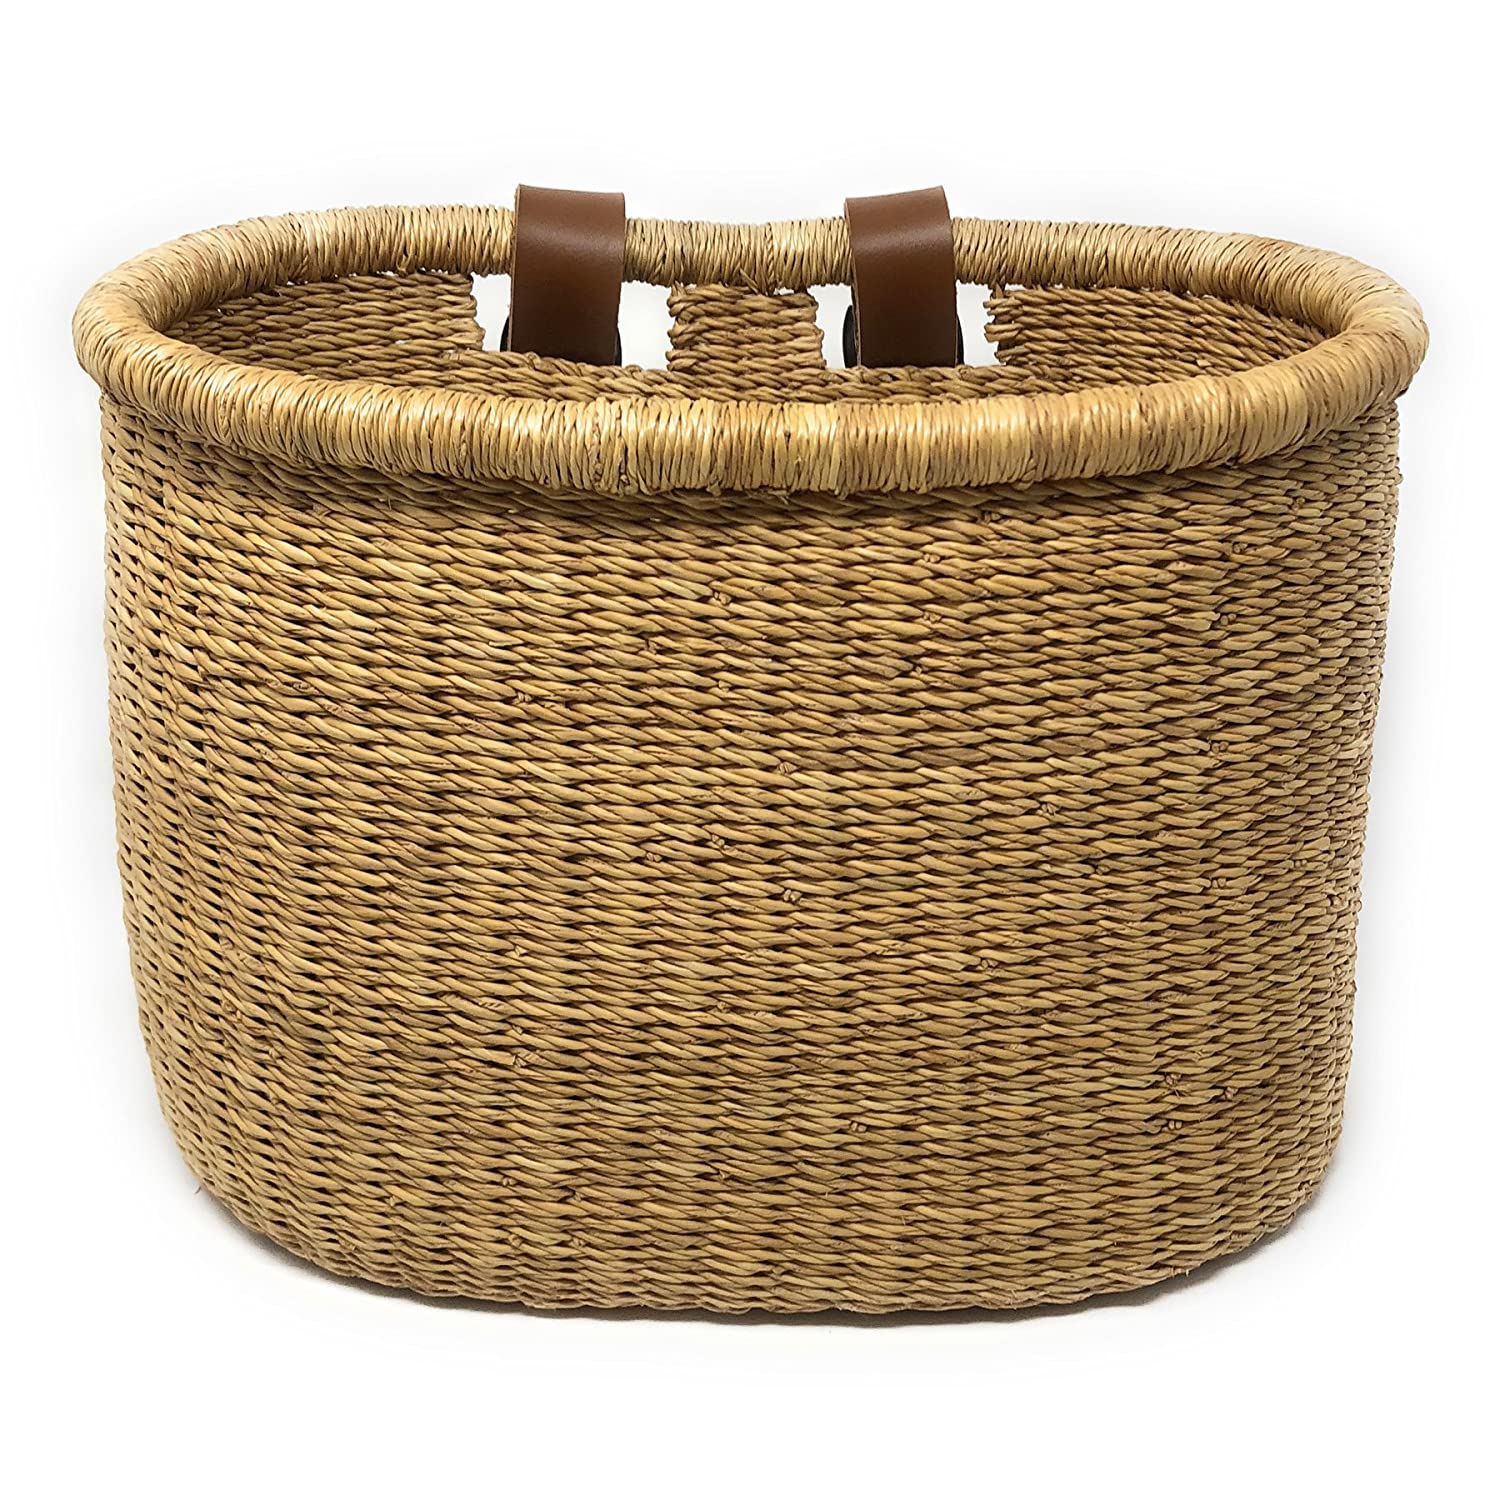 Swahili African Modern African Elephant Grass Handwoven Bicycle Basket, Natural GH36A